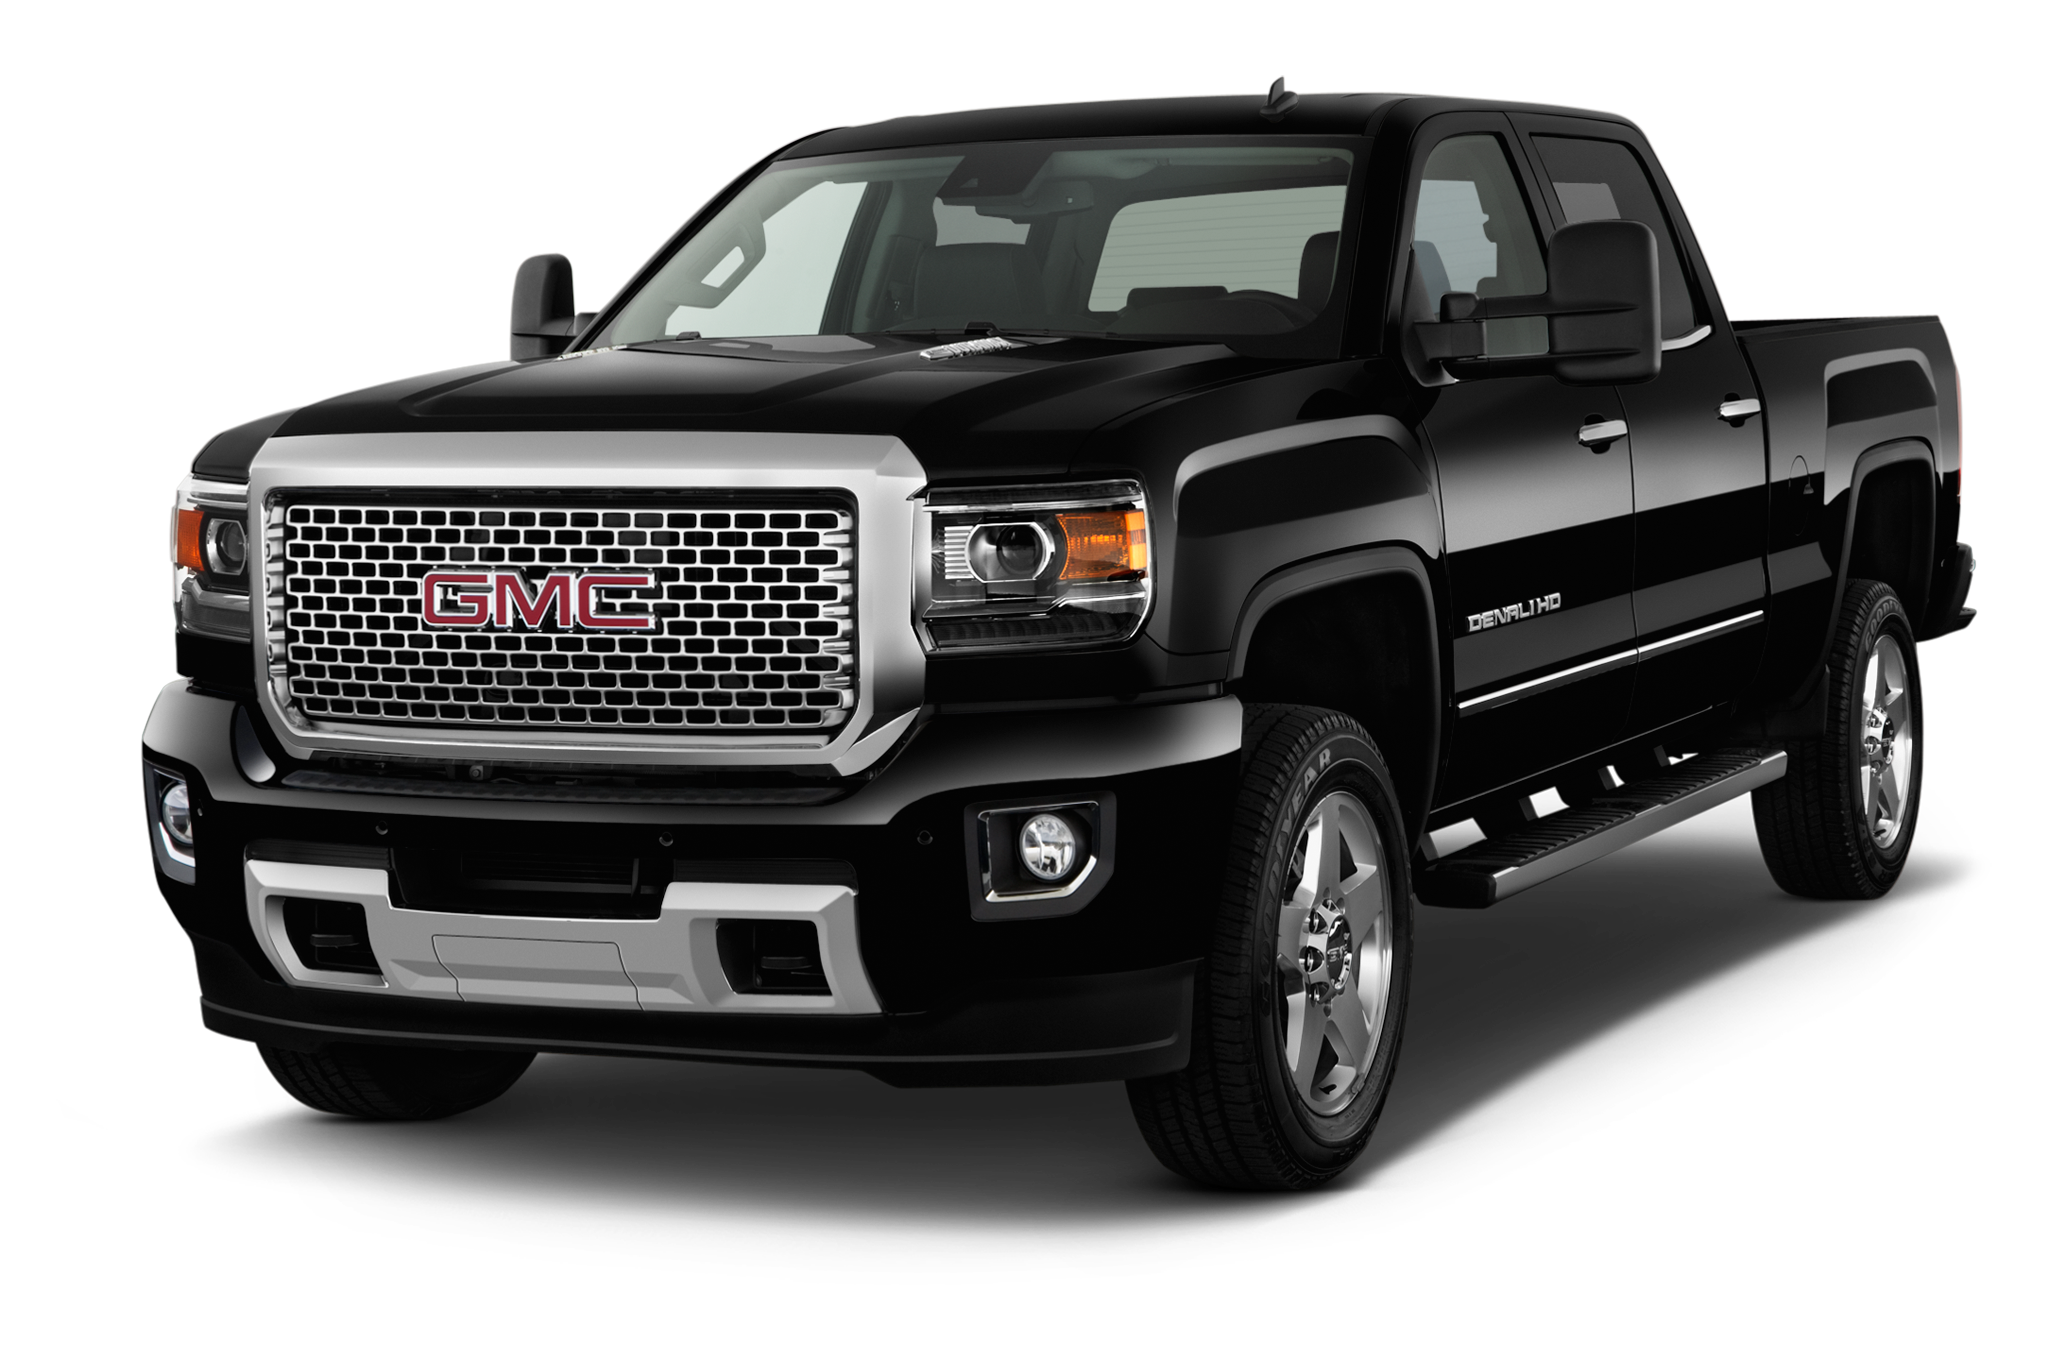 2016 gmc sierra 2500 denali hd 4wd crew cab standard box. Black Bedroom Furniture Sets. Home Design Ideas